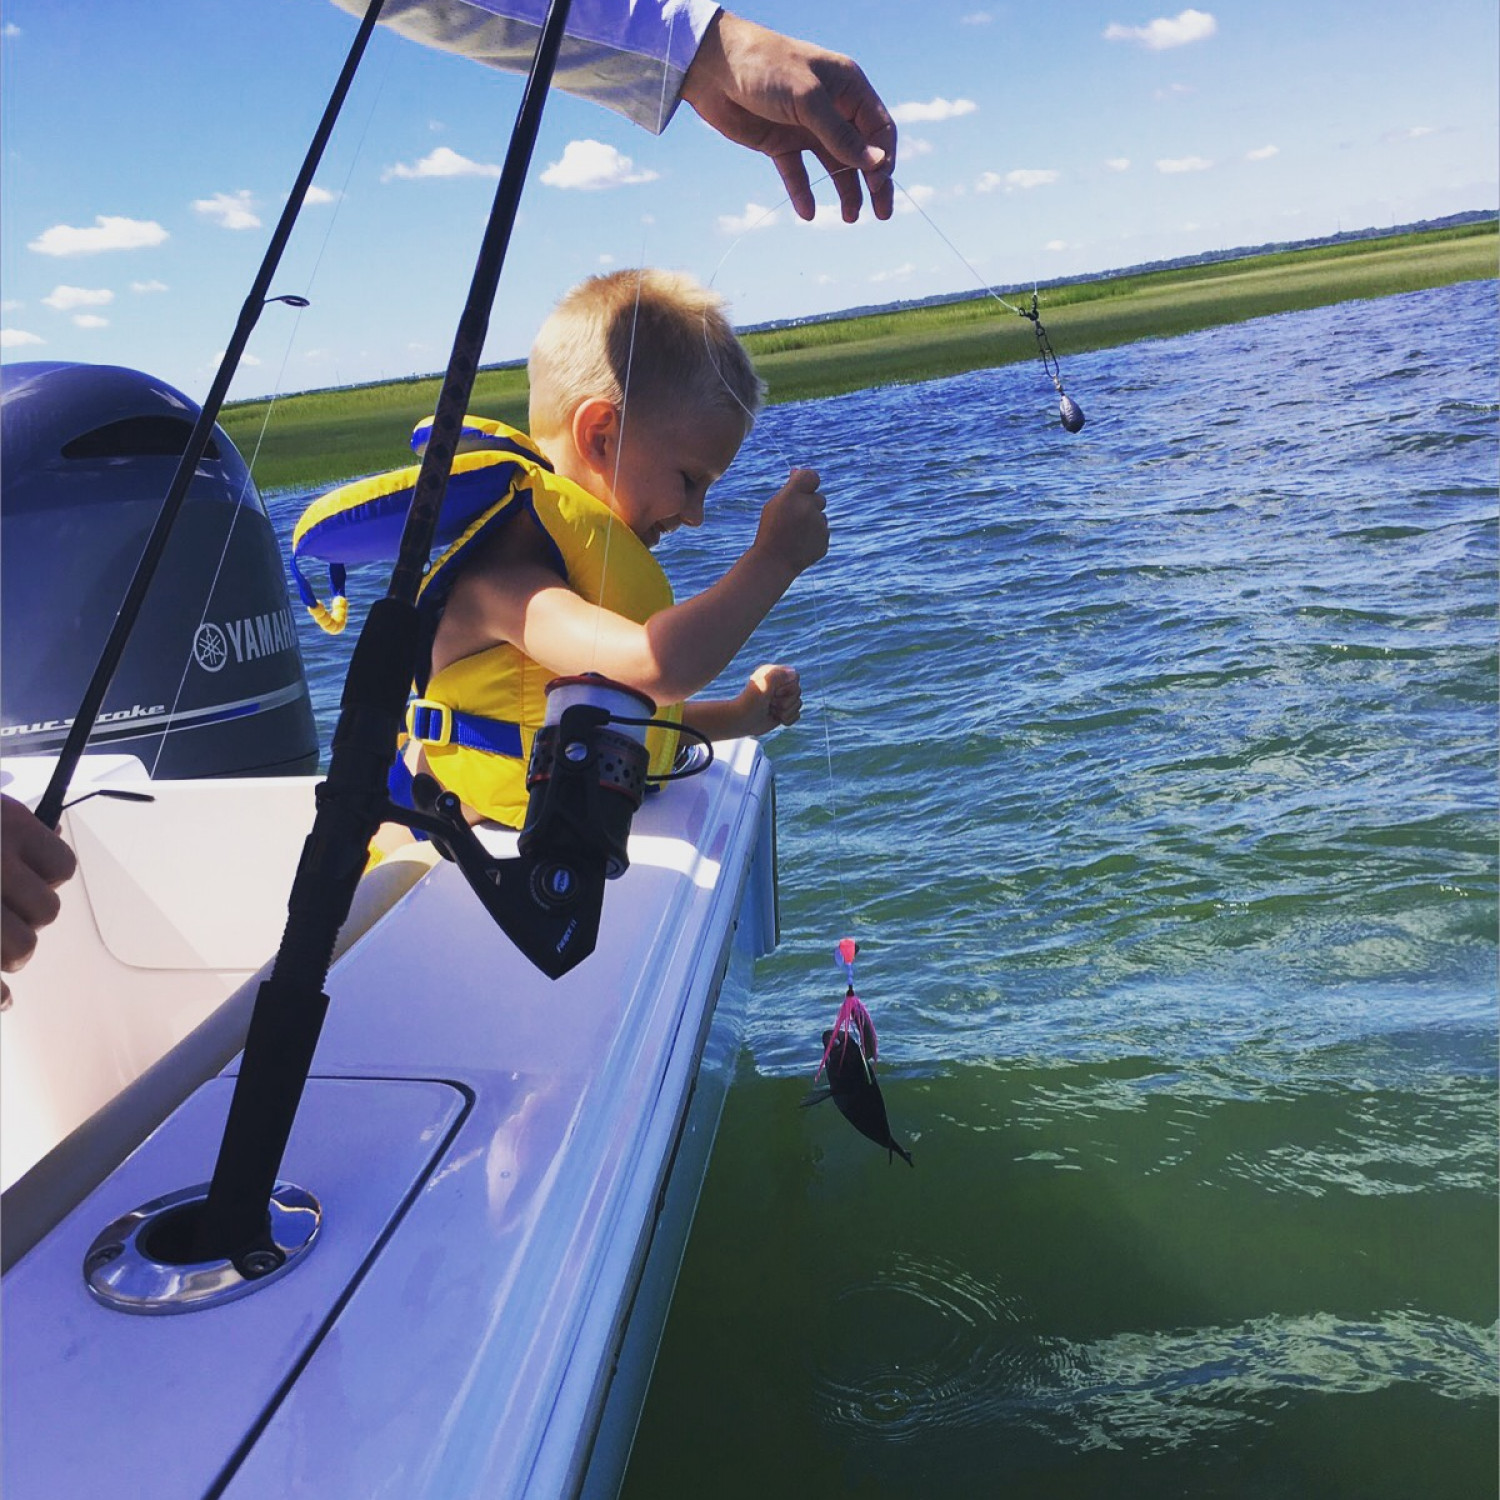 Title: First catch! - On board their Sportsman Open 212 Center Console - Location: Sea Isle City, Nee Jersey. Participating in the Photo Contest #SportsmanNovember2017